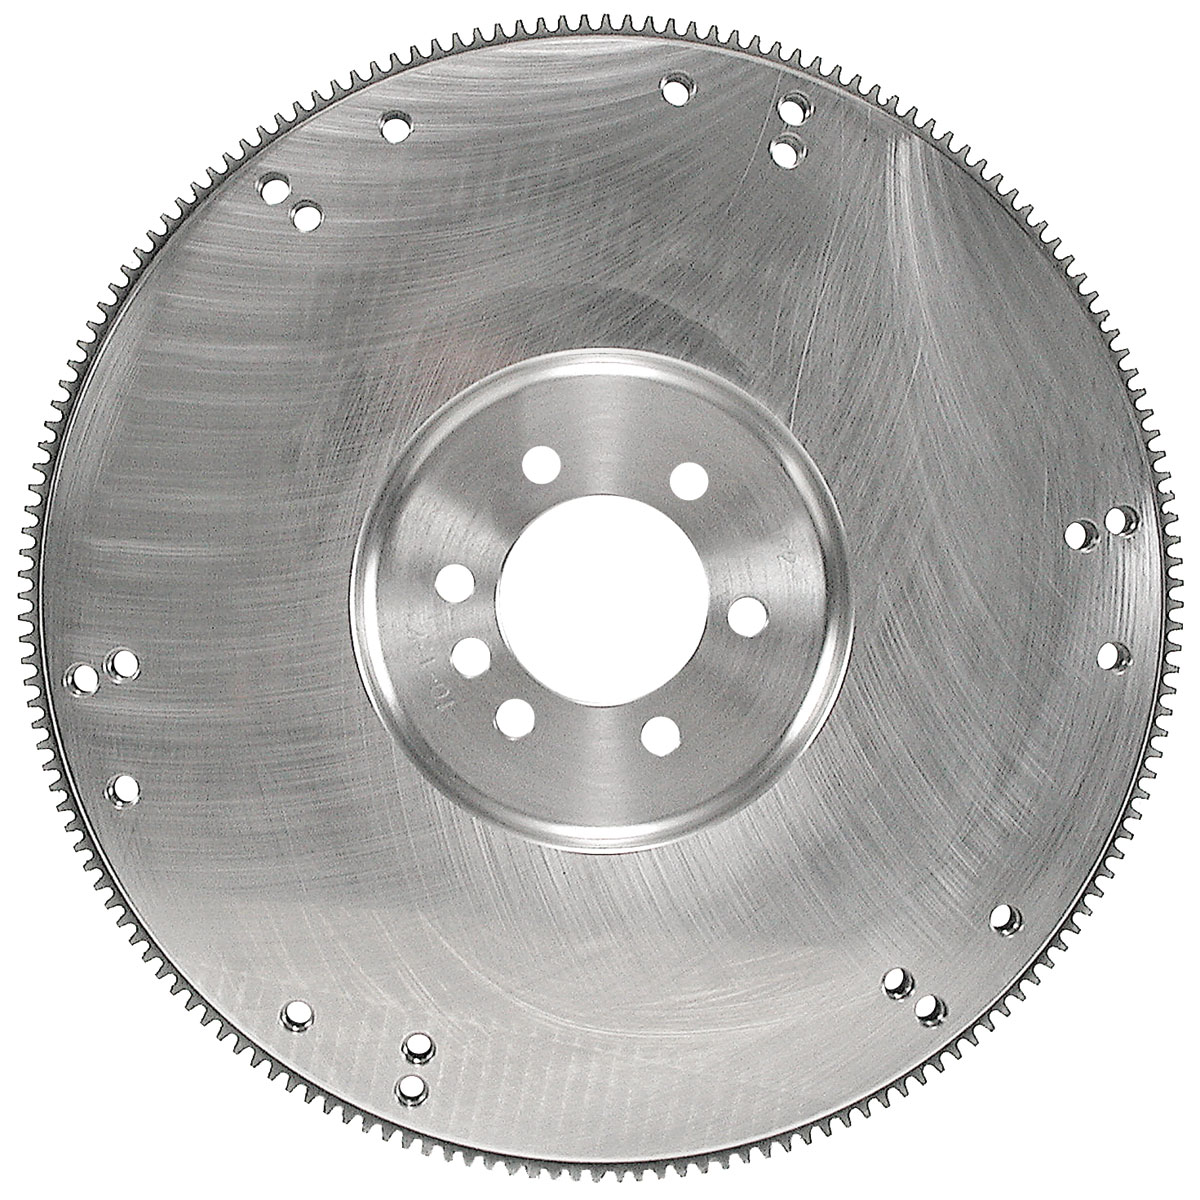 Flywheel, Hays, Chevrolet 400, External Balanced, 30LB., 168 Tooth